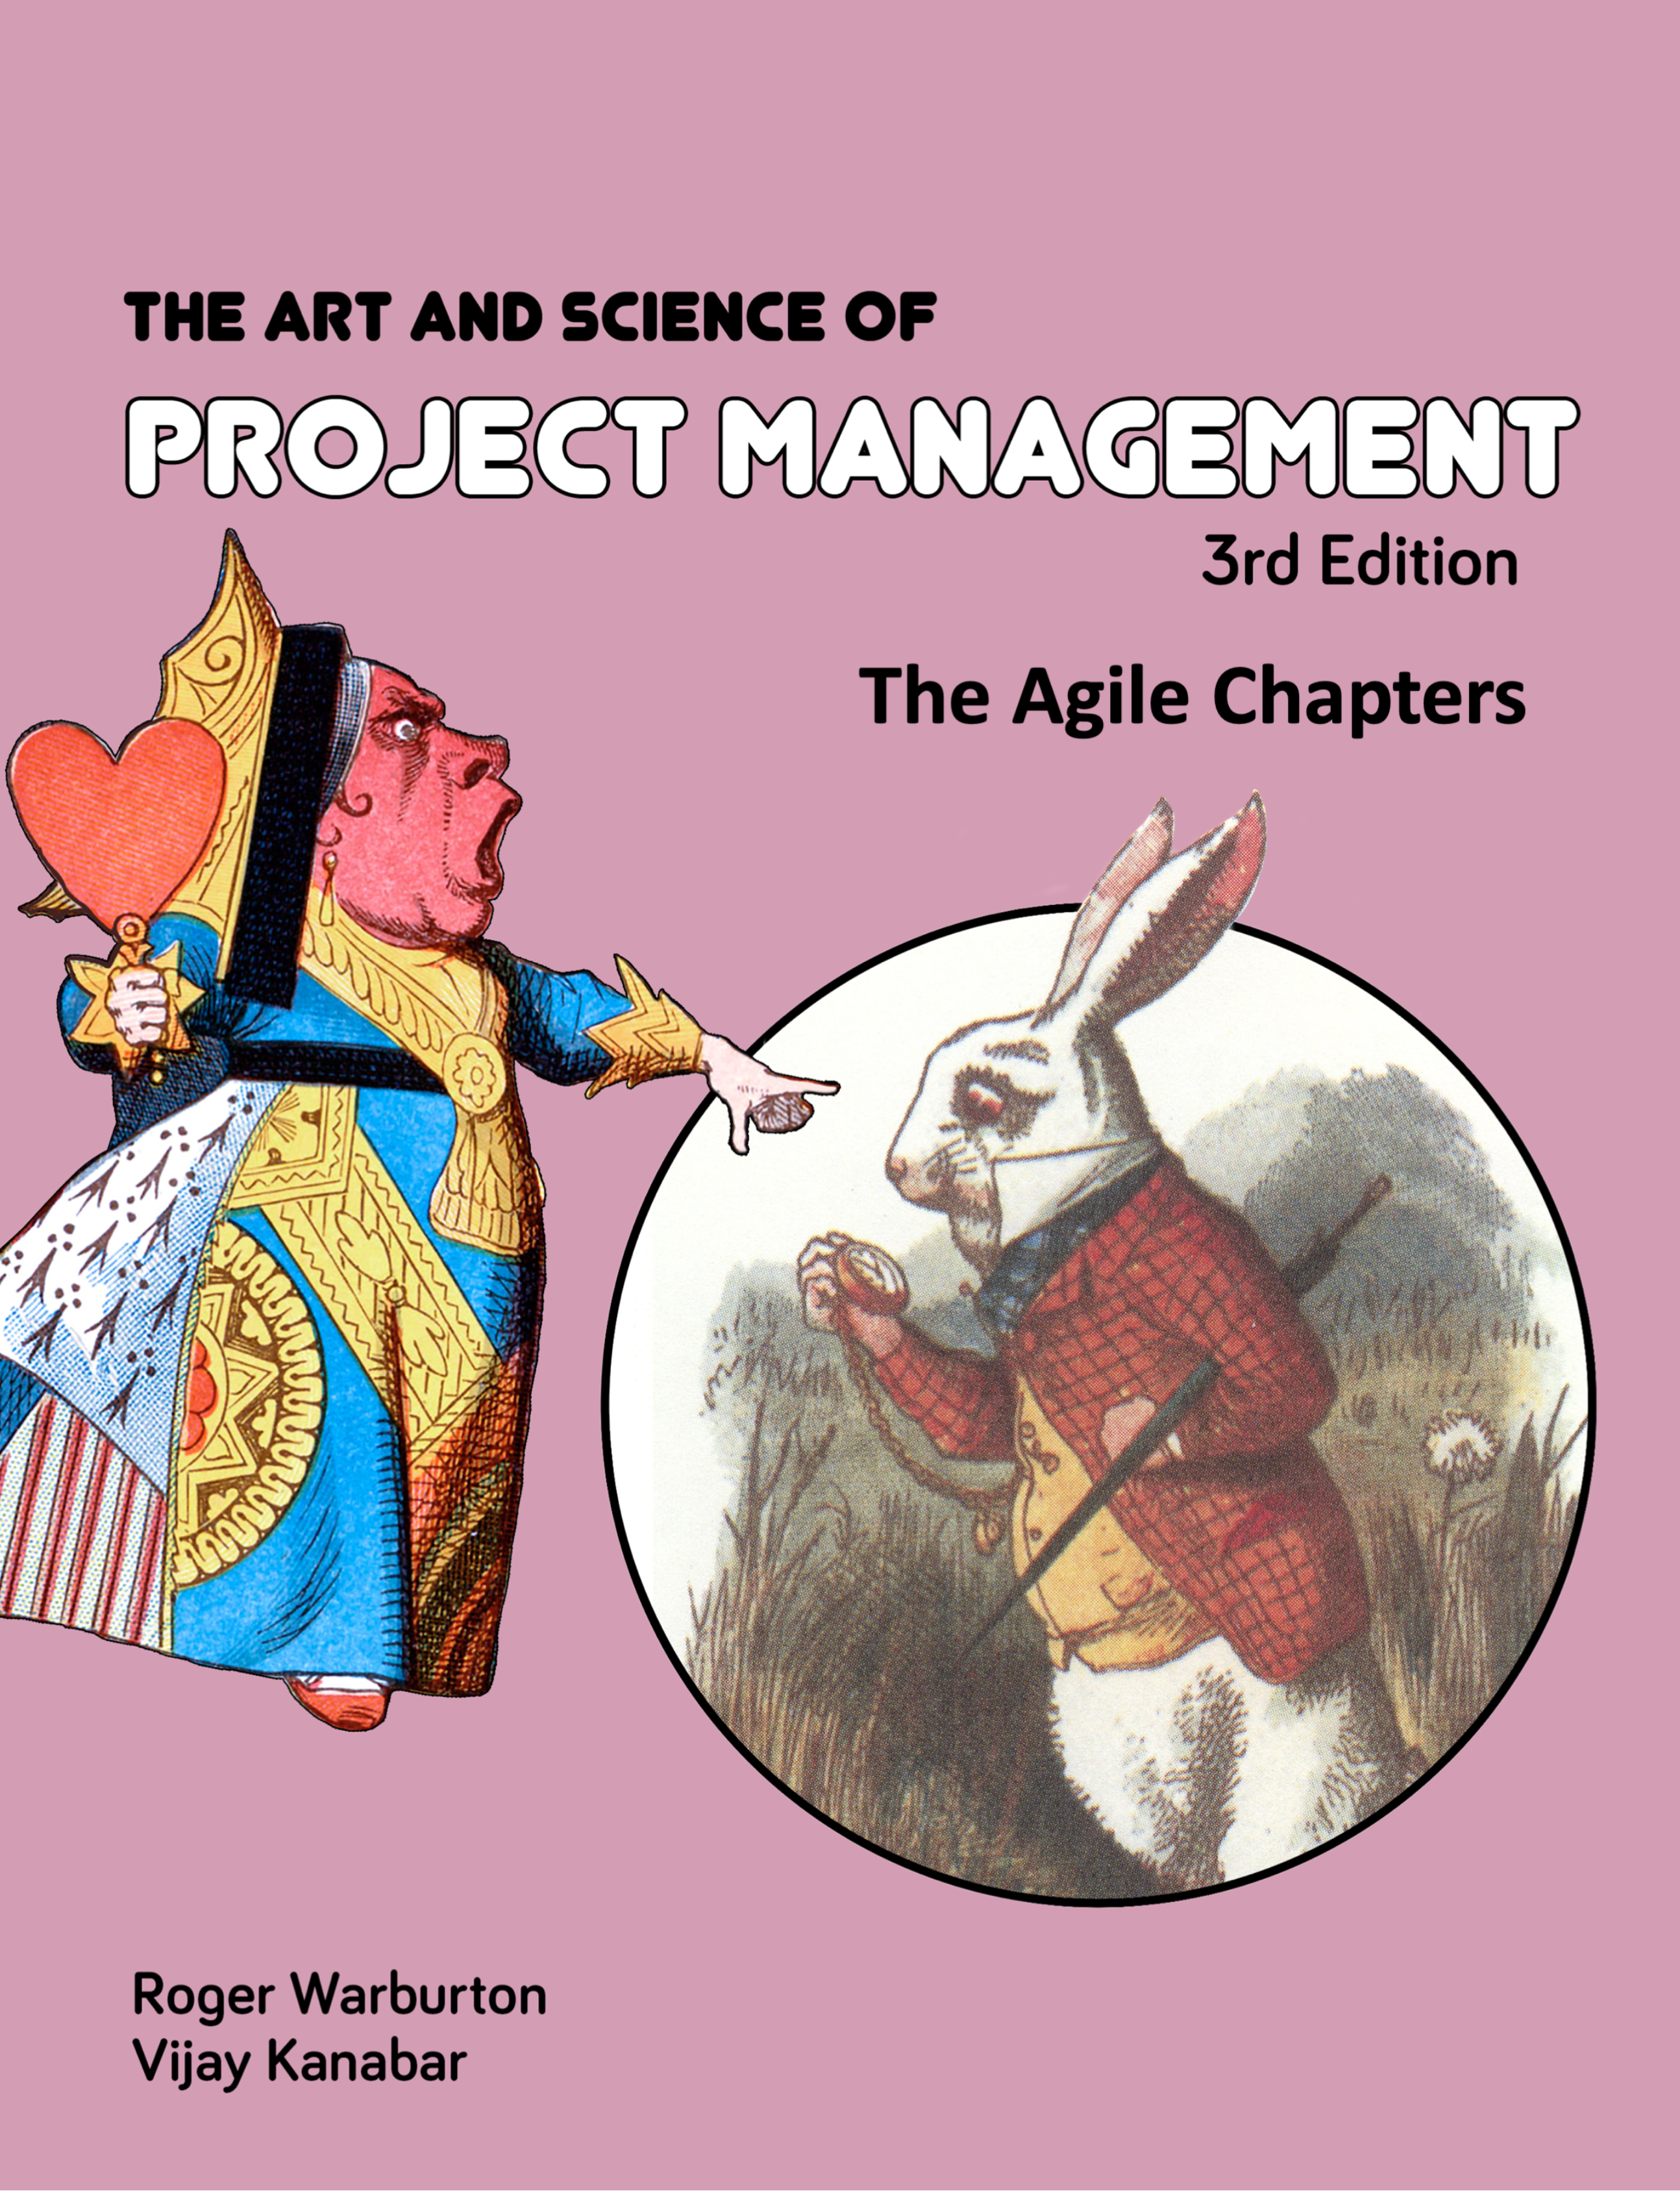 The Agile Chapters